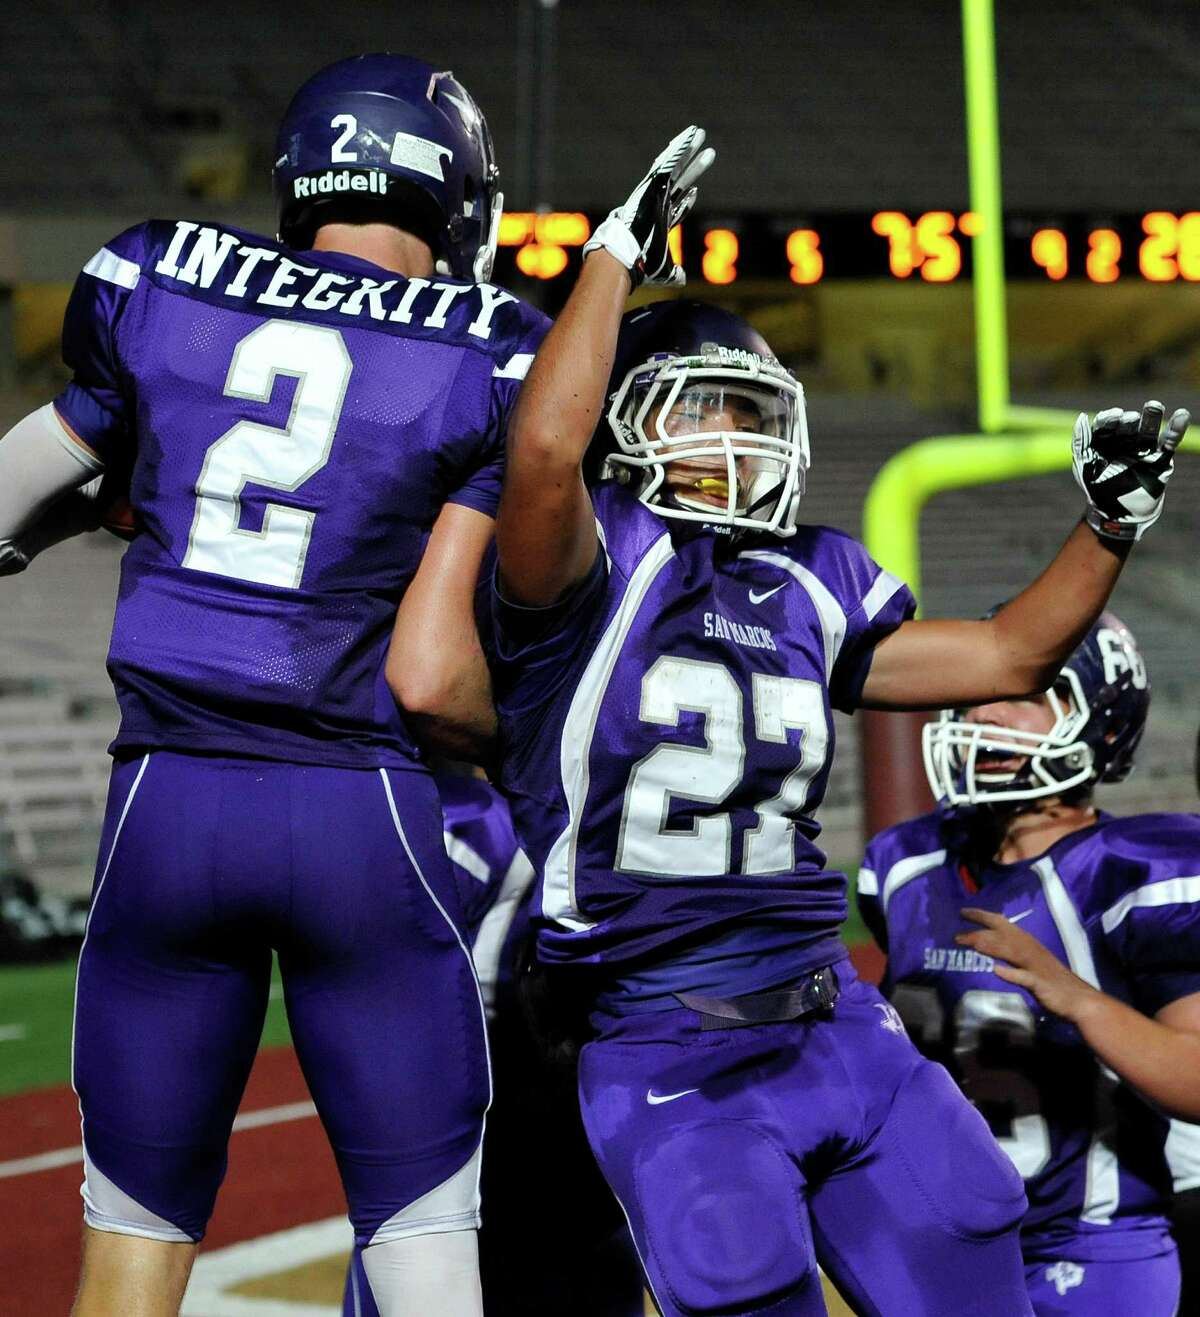 San Marcos players Zach Sterling, left, and Jacob Mendoza celebrate a touchdown during the first half of a high school football game against Steele, Thursday, Sept. 26, 2013, at Bobcat Stadium in San Marcos, Texas. (Darren Abate/For the Express-News)